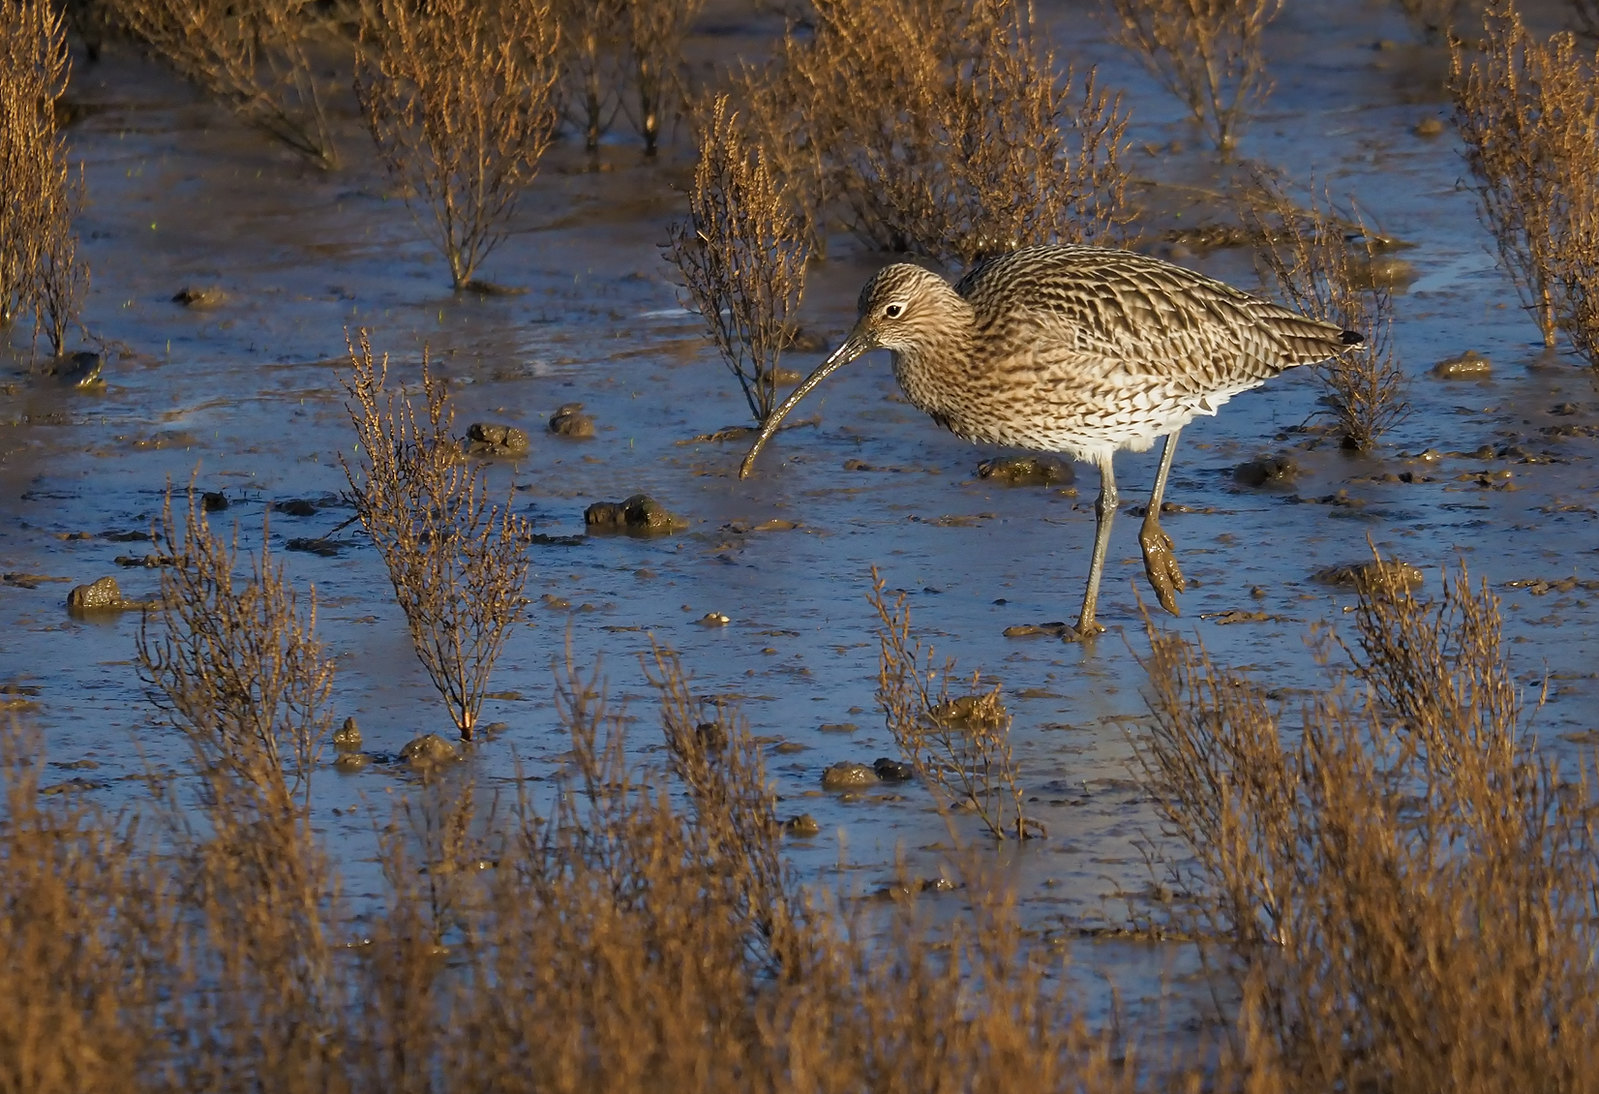 Curlew in mud